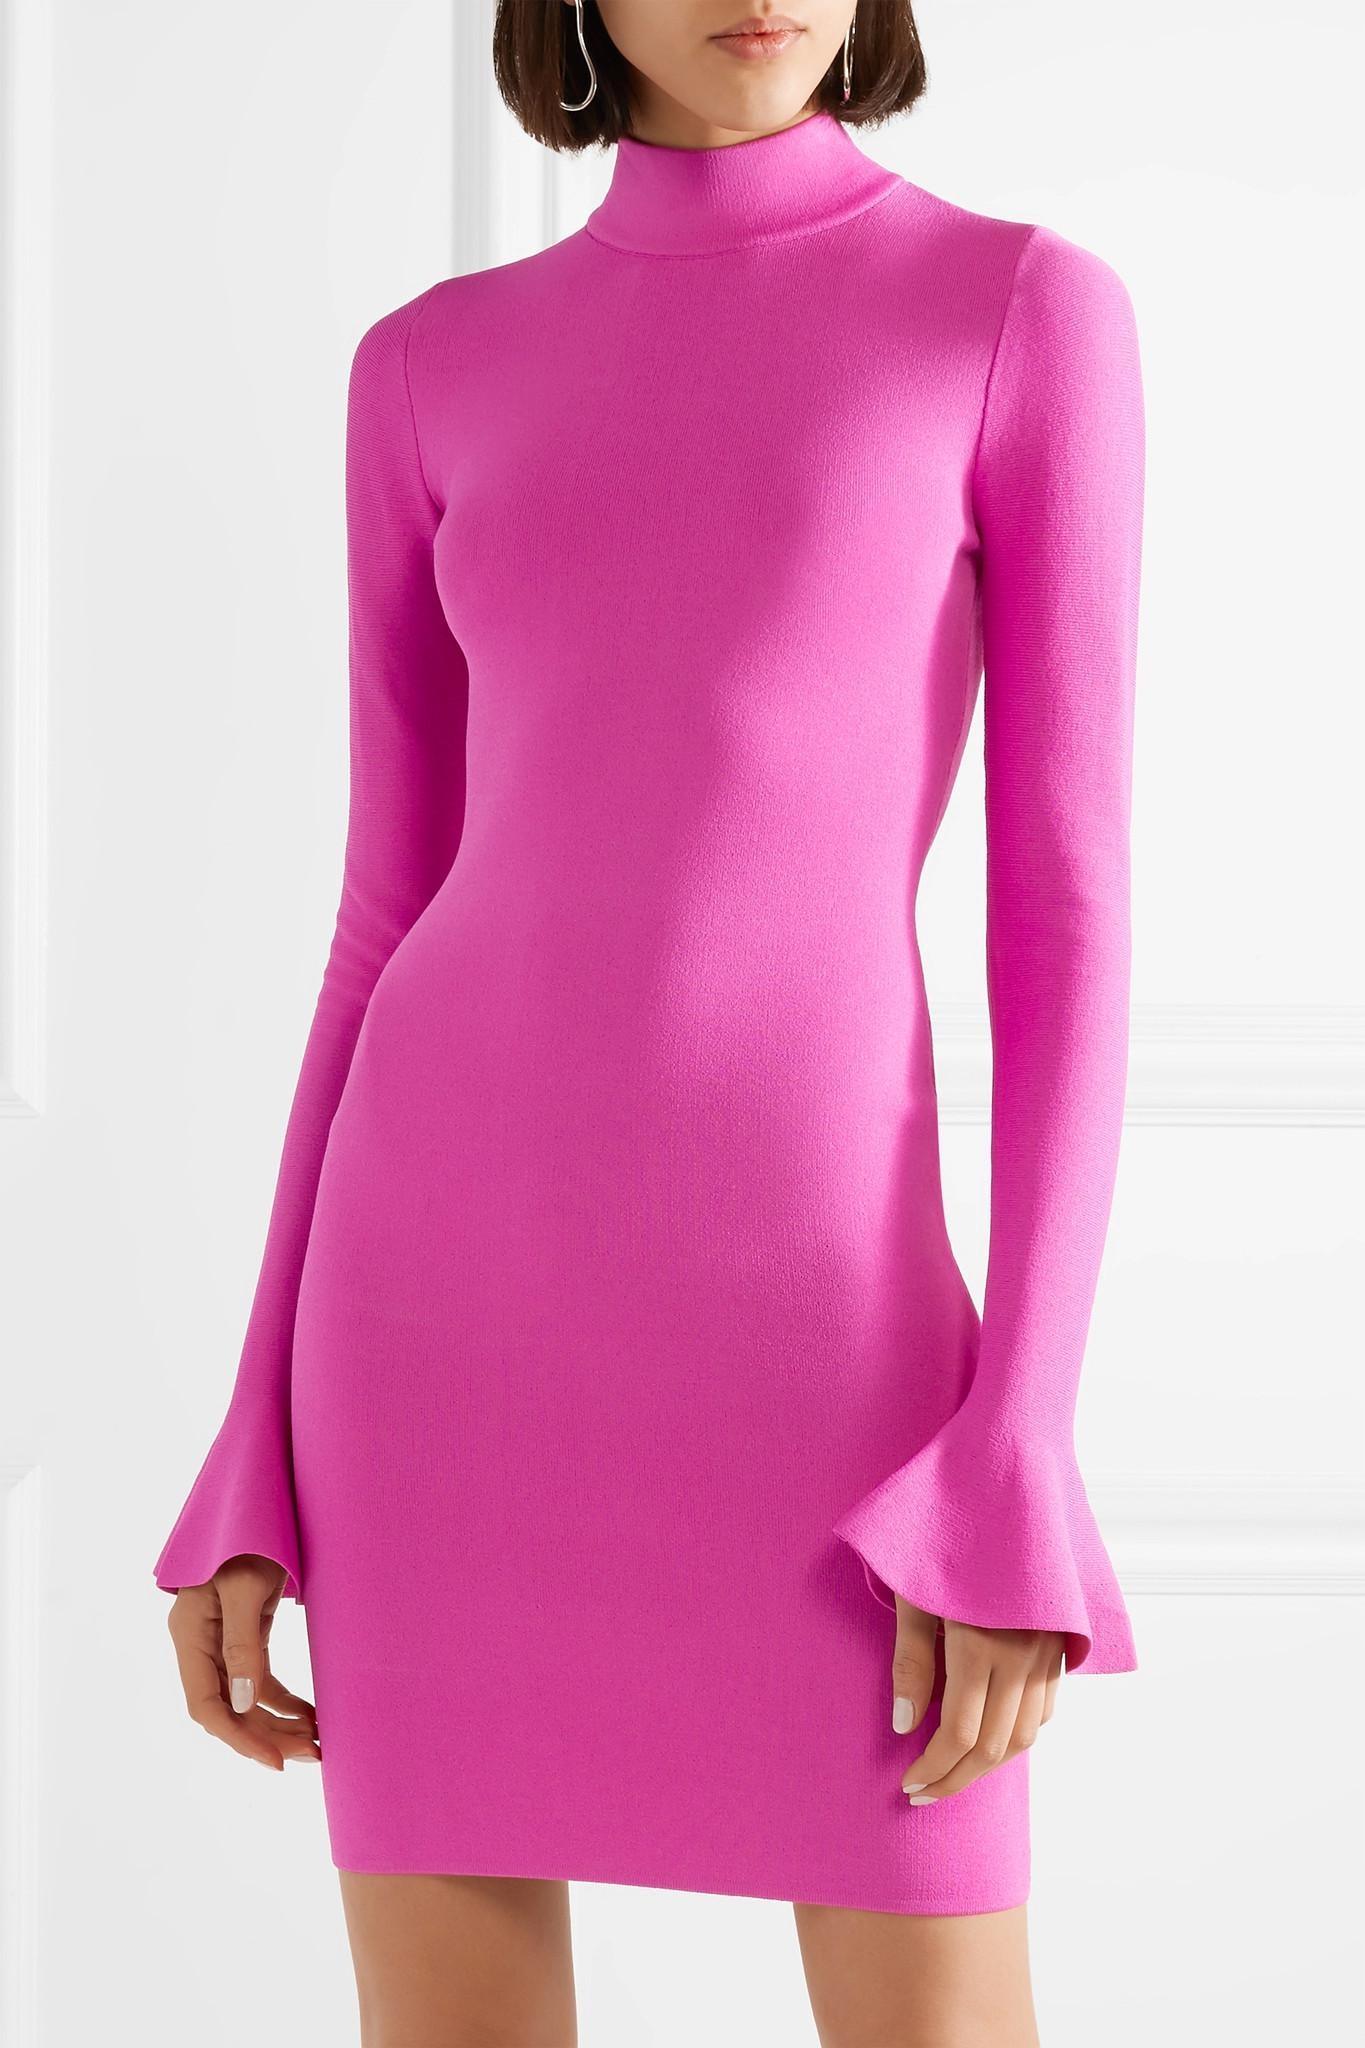 Stretch-knit Mini Dress - Bright pink Michael Kors ejViXs